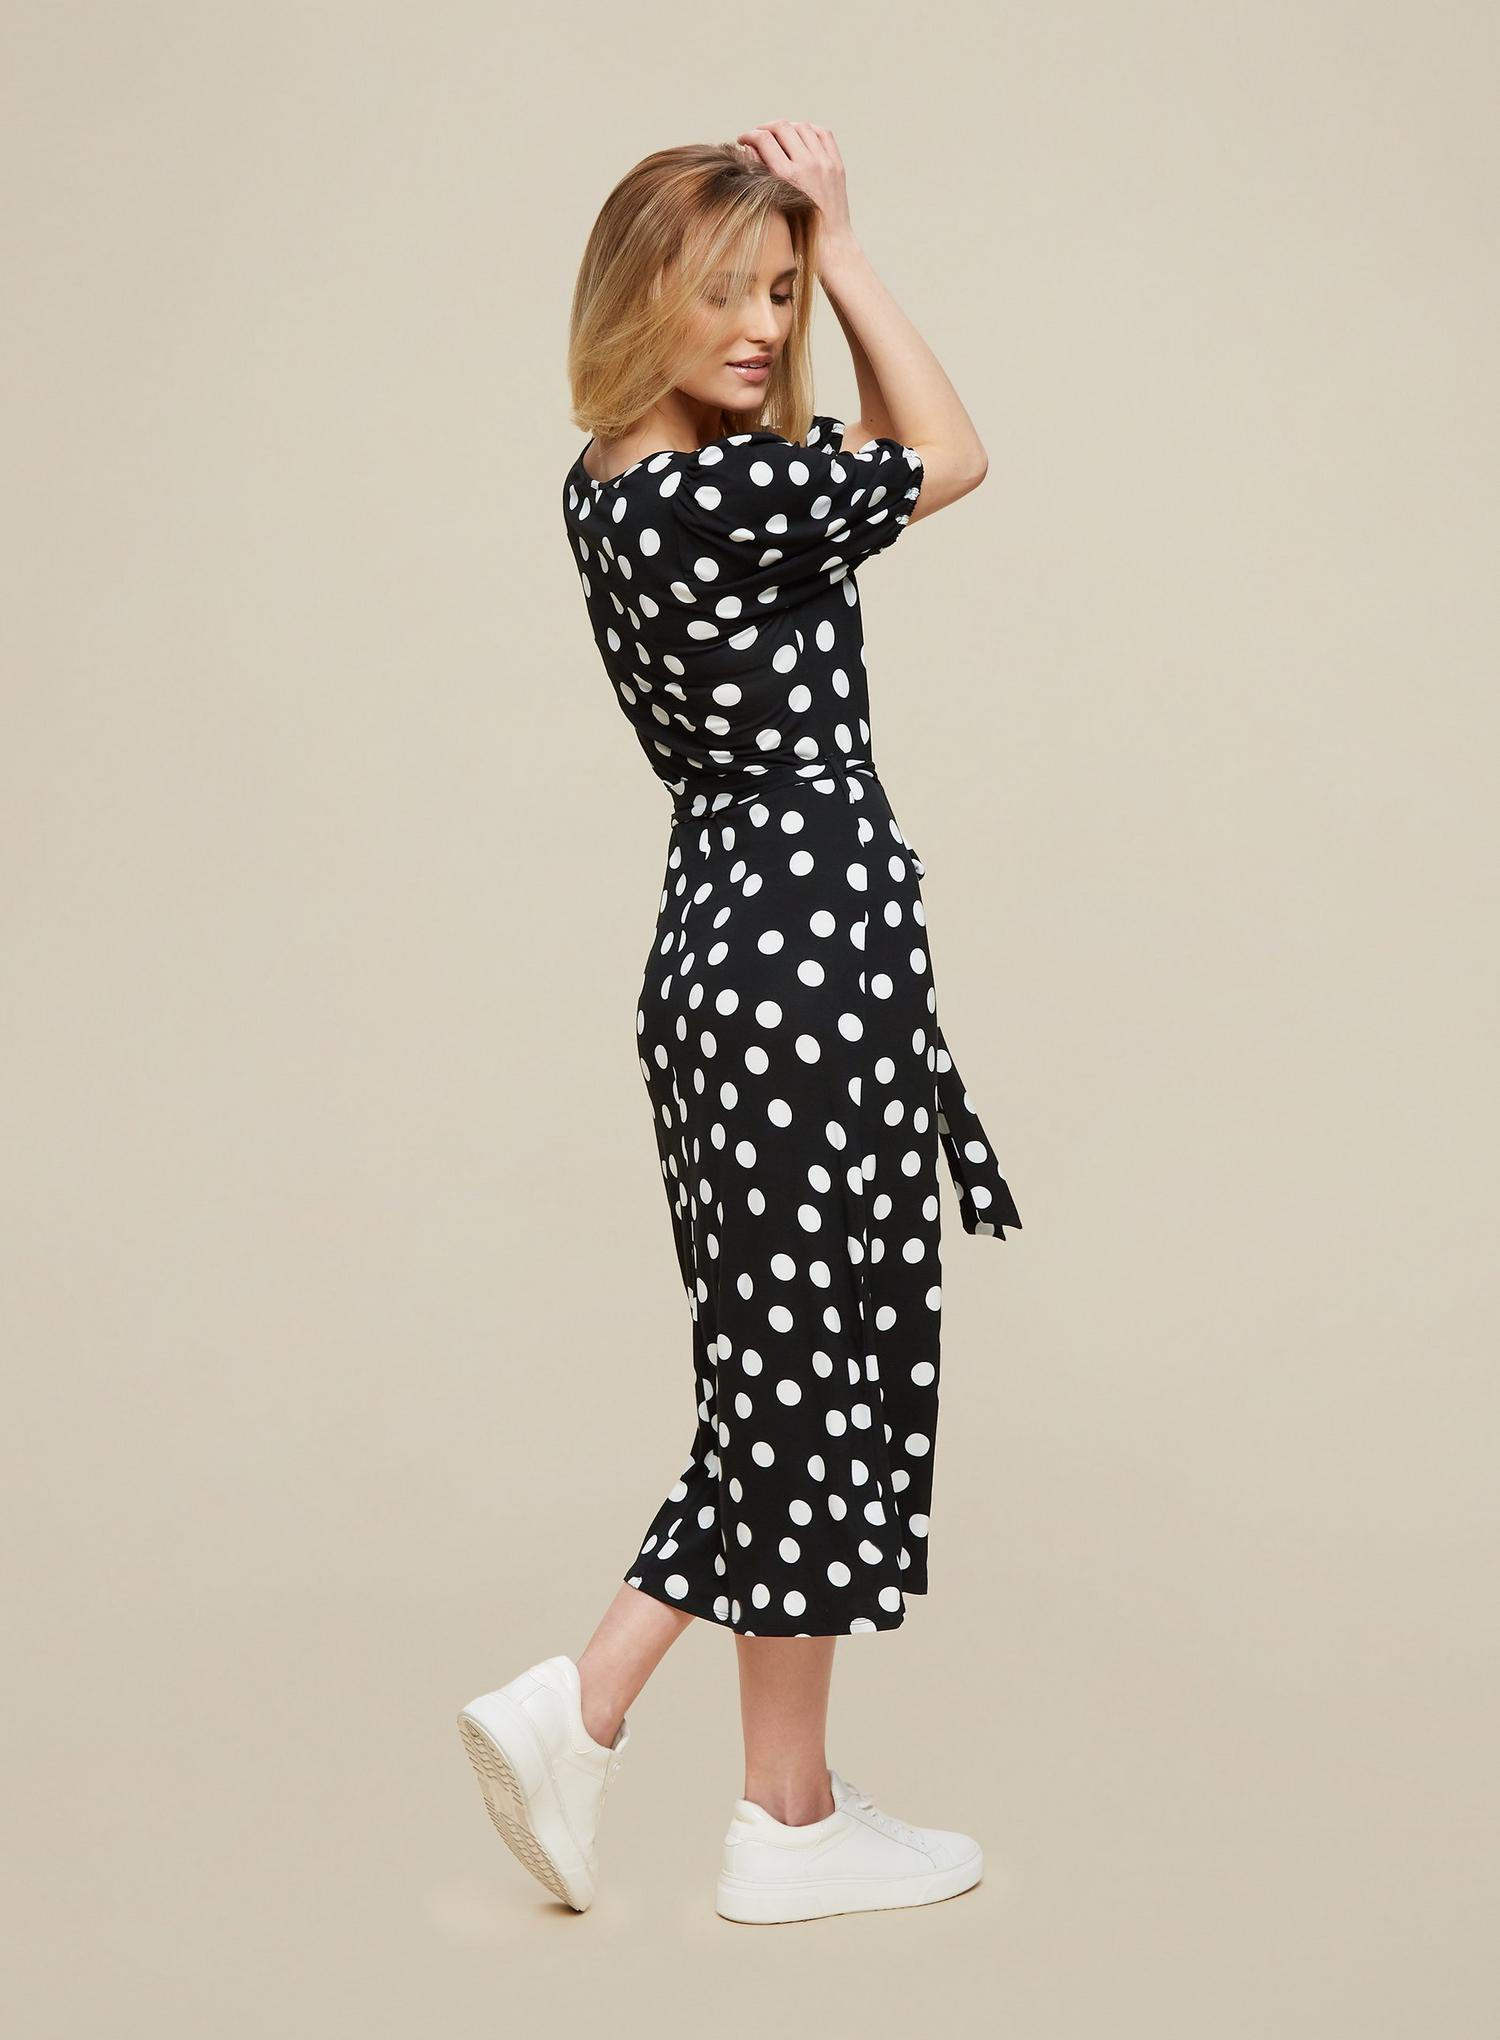 105 Monochrome Spot Print Midi Dress image number 4